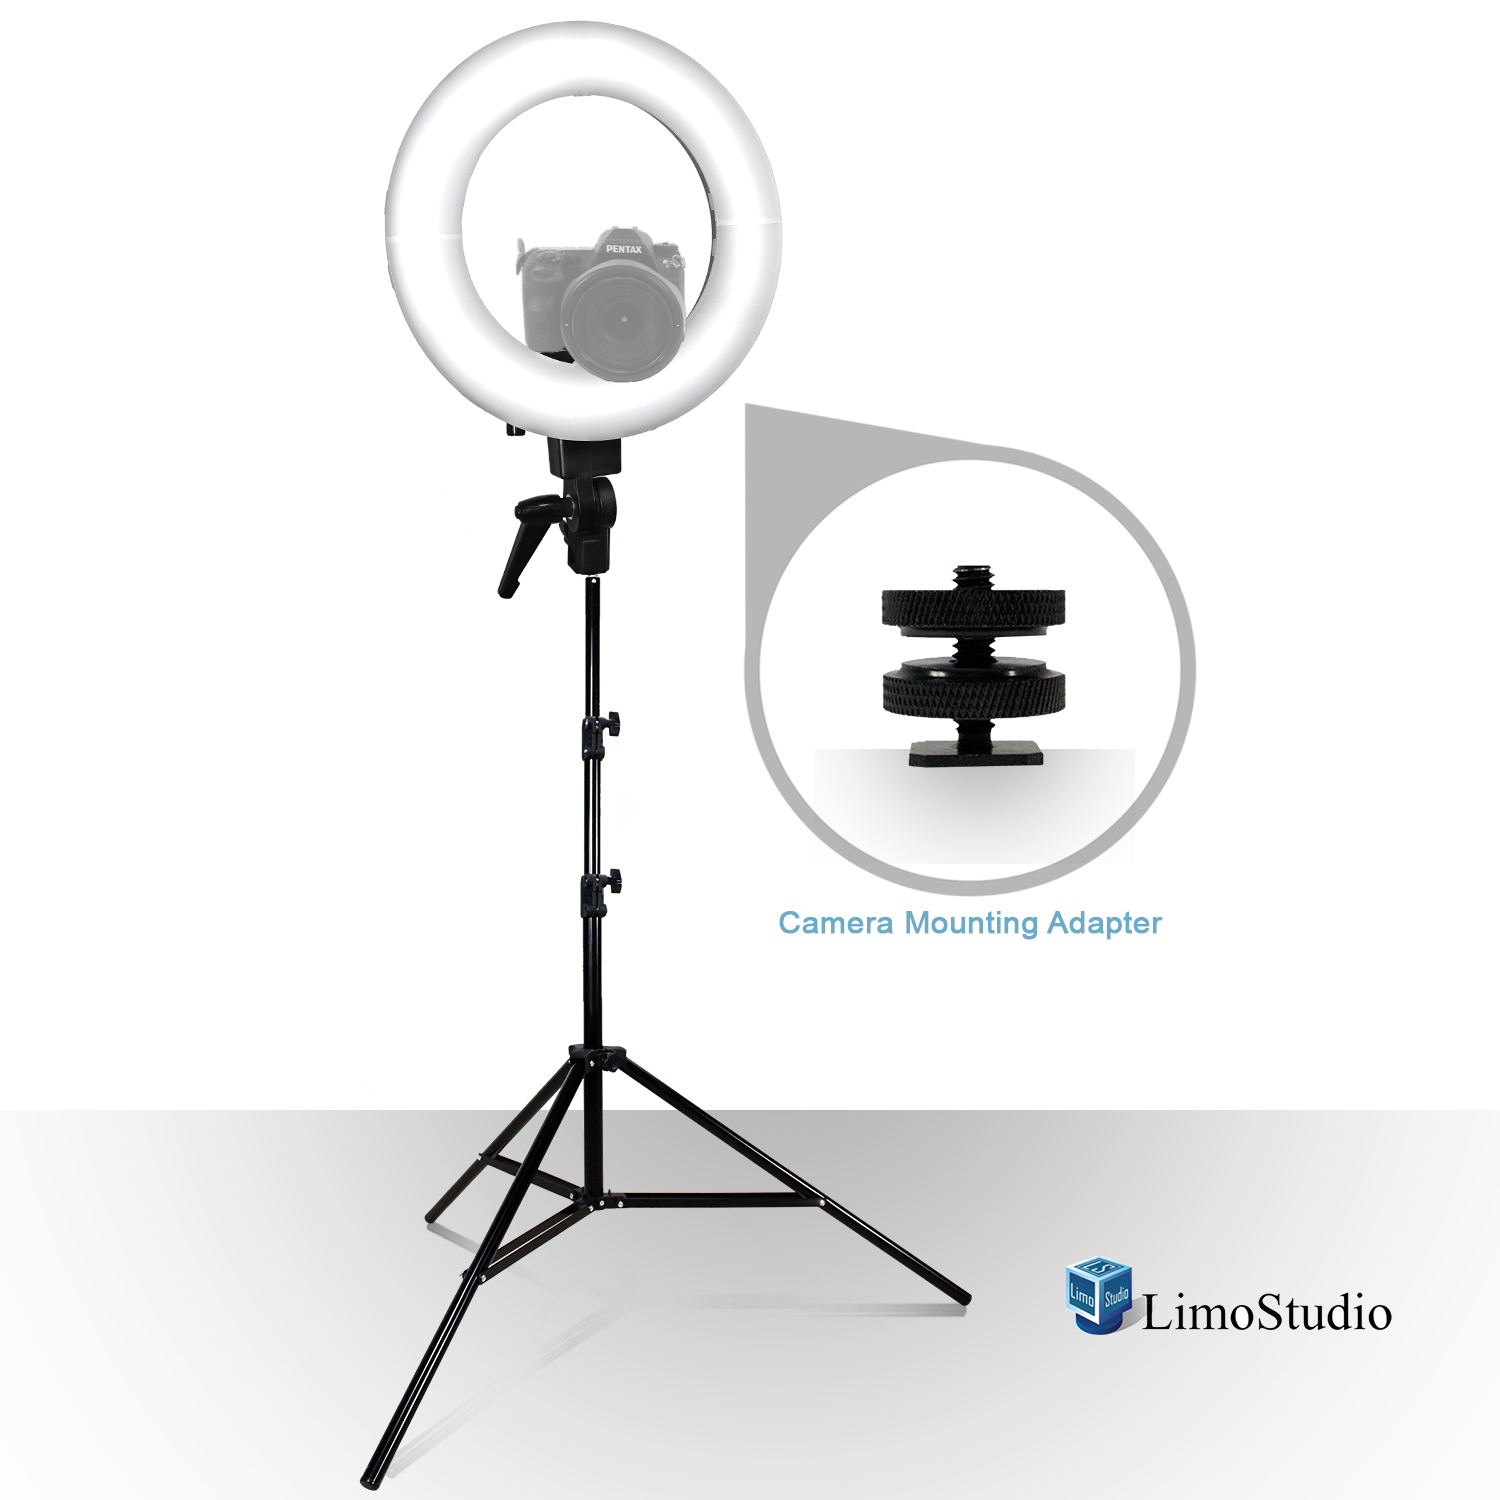 Loadstone Studio 14 Inch Led Round Ring Light With Carry Bag And Light Stand Tripod, Dimmable Continuous Lighting Kit, Snap On White Diffuser Cover & Camera Mounting Bracket, Wmls2734 by Loadstone Studio